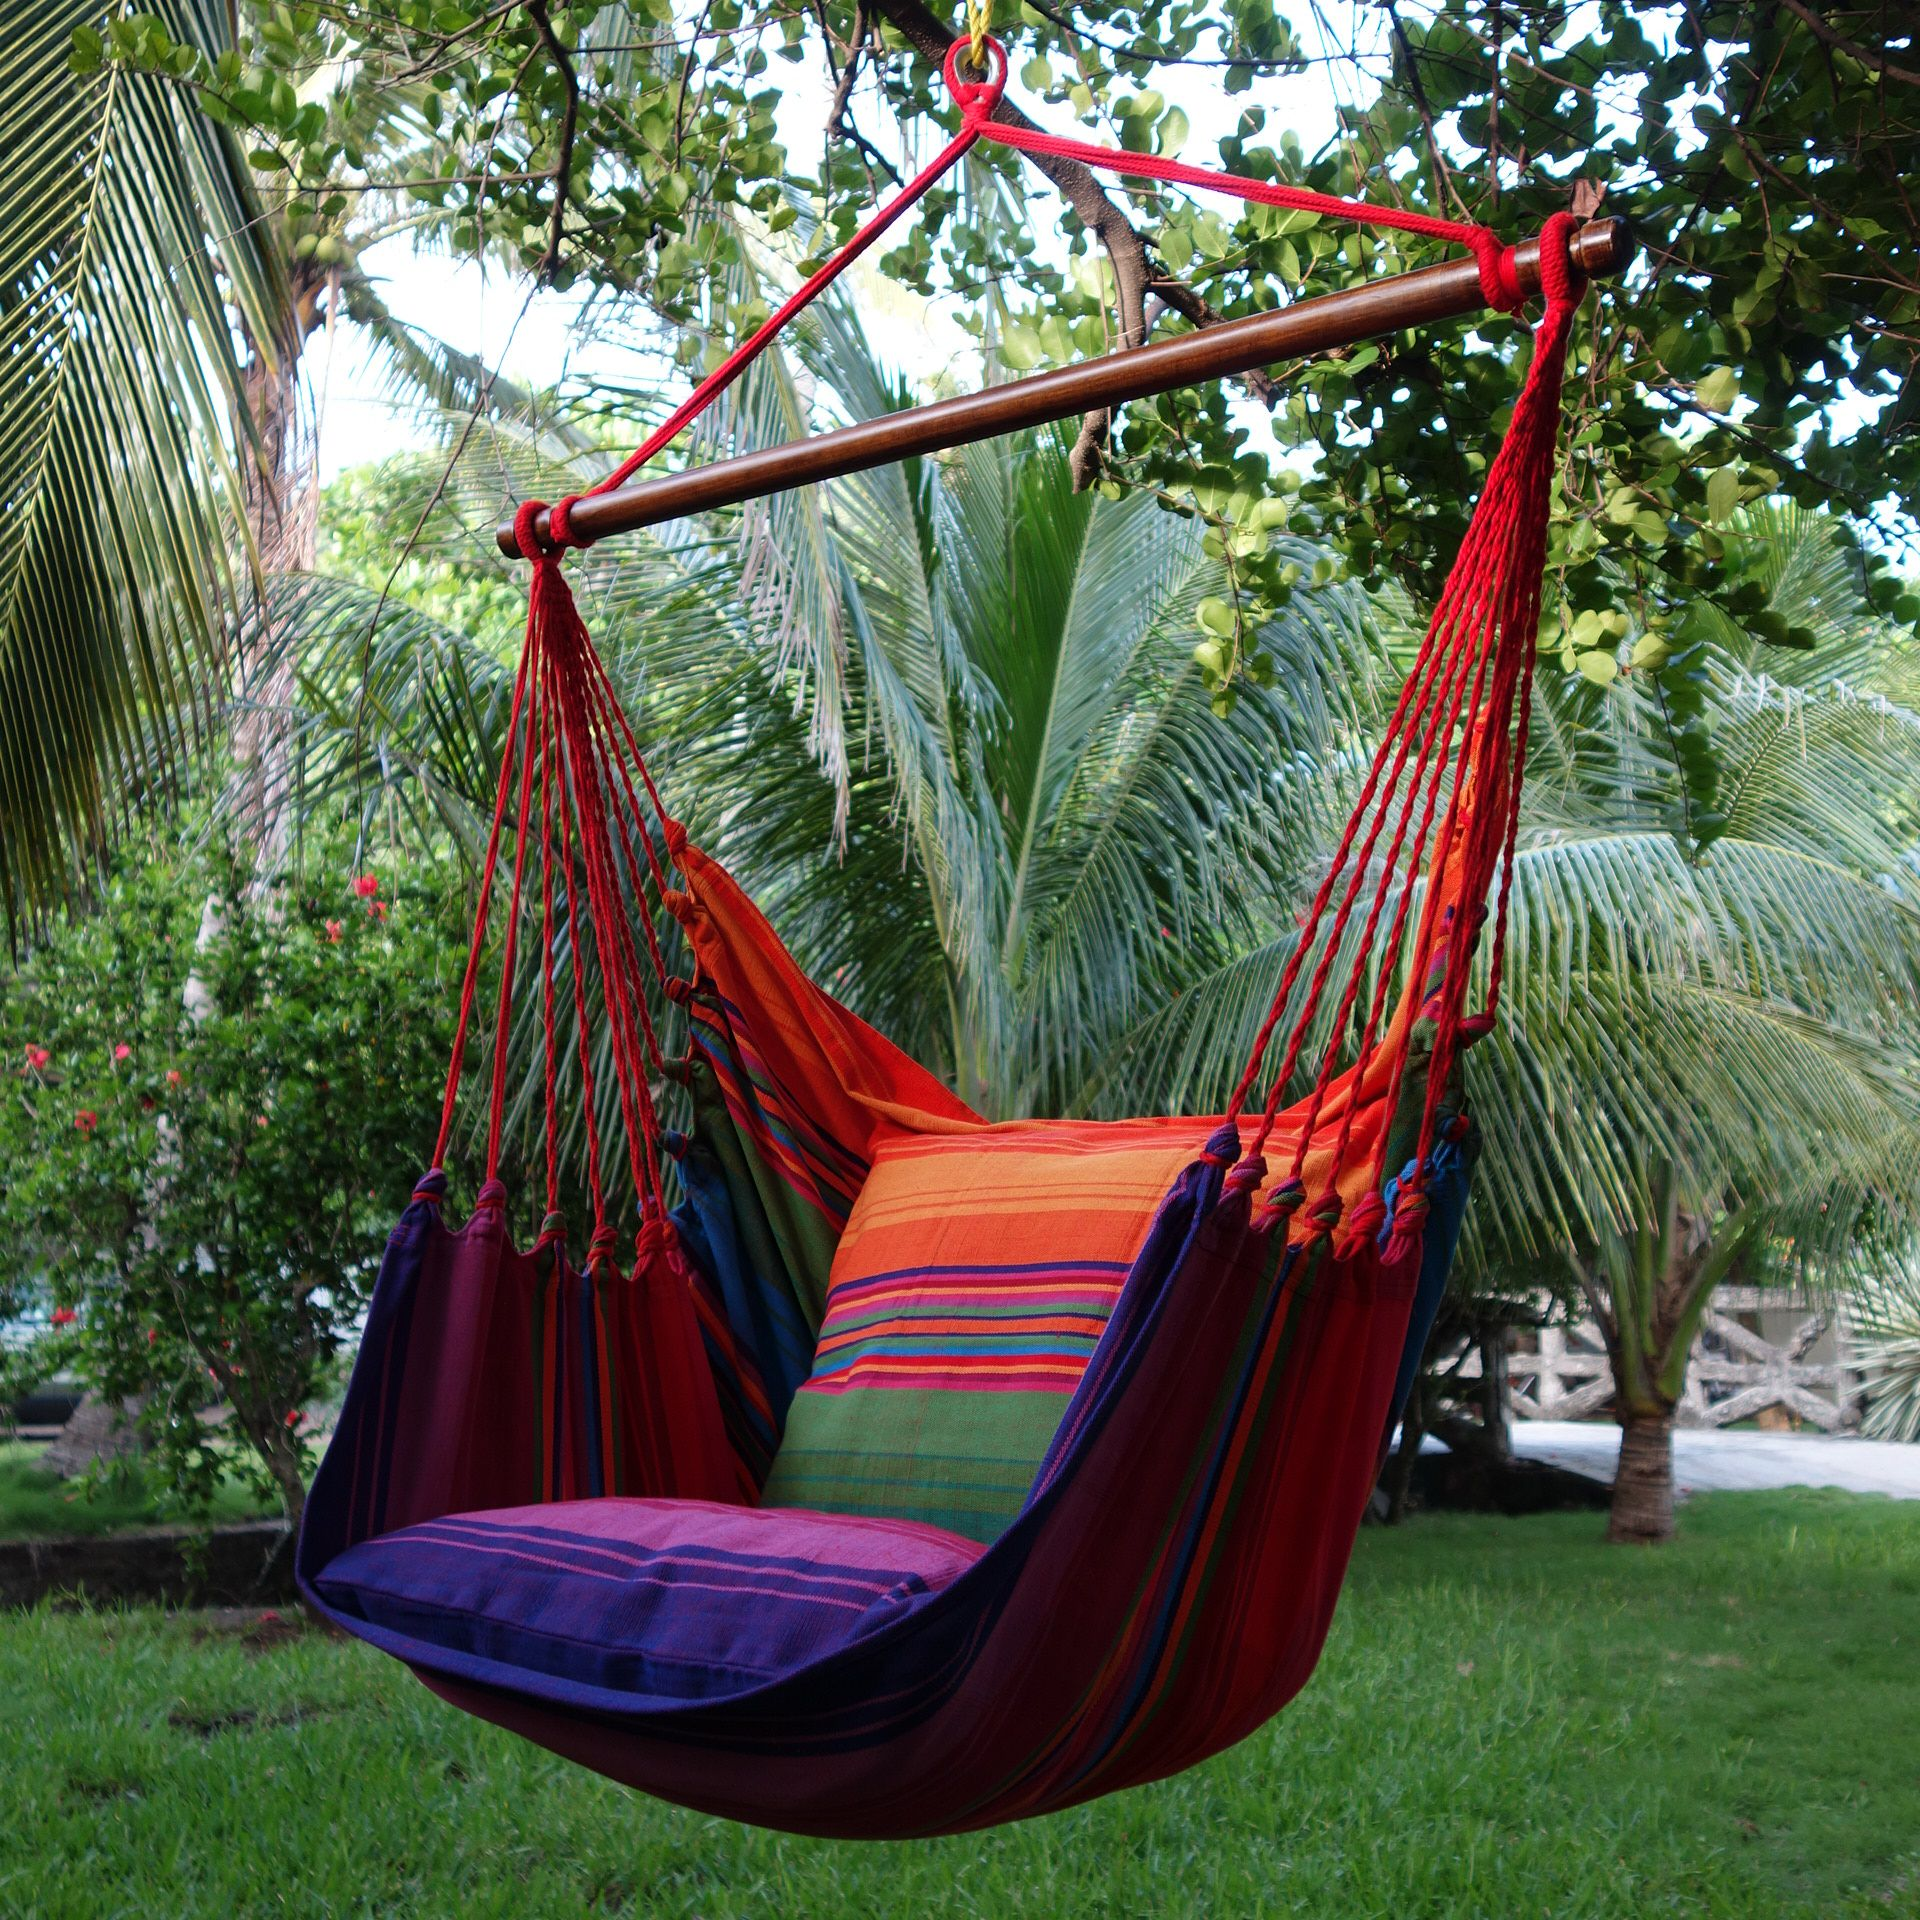 Choosing A Hammock Chair For Your Backyard